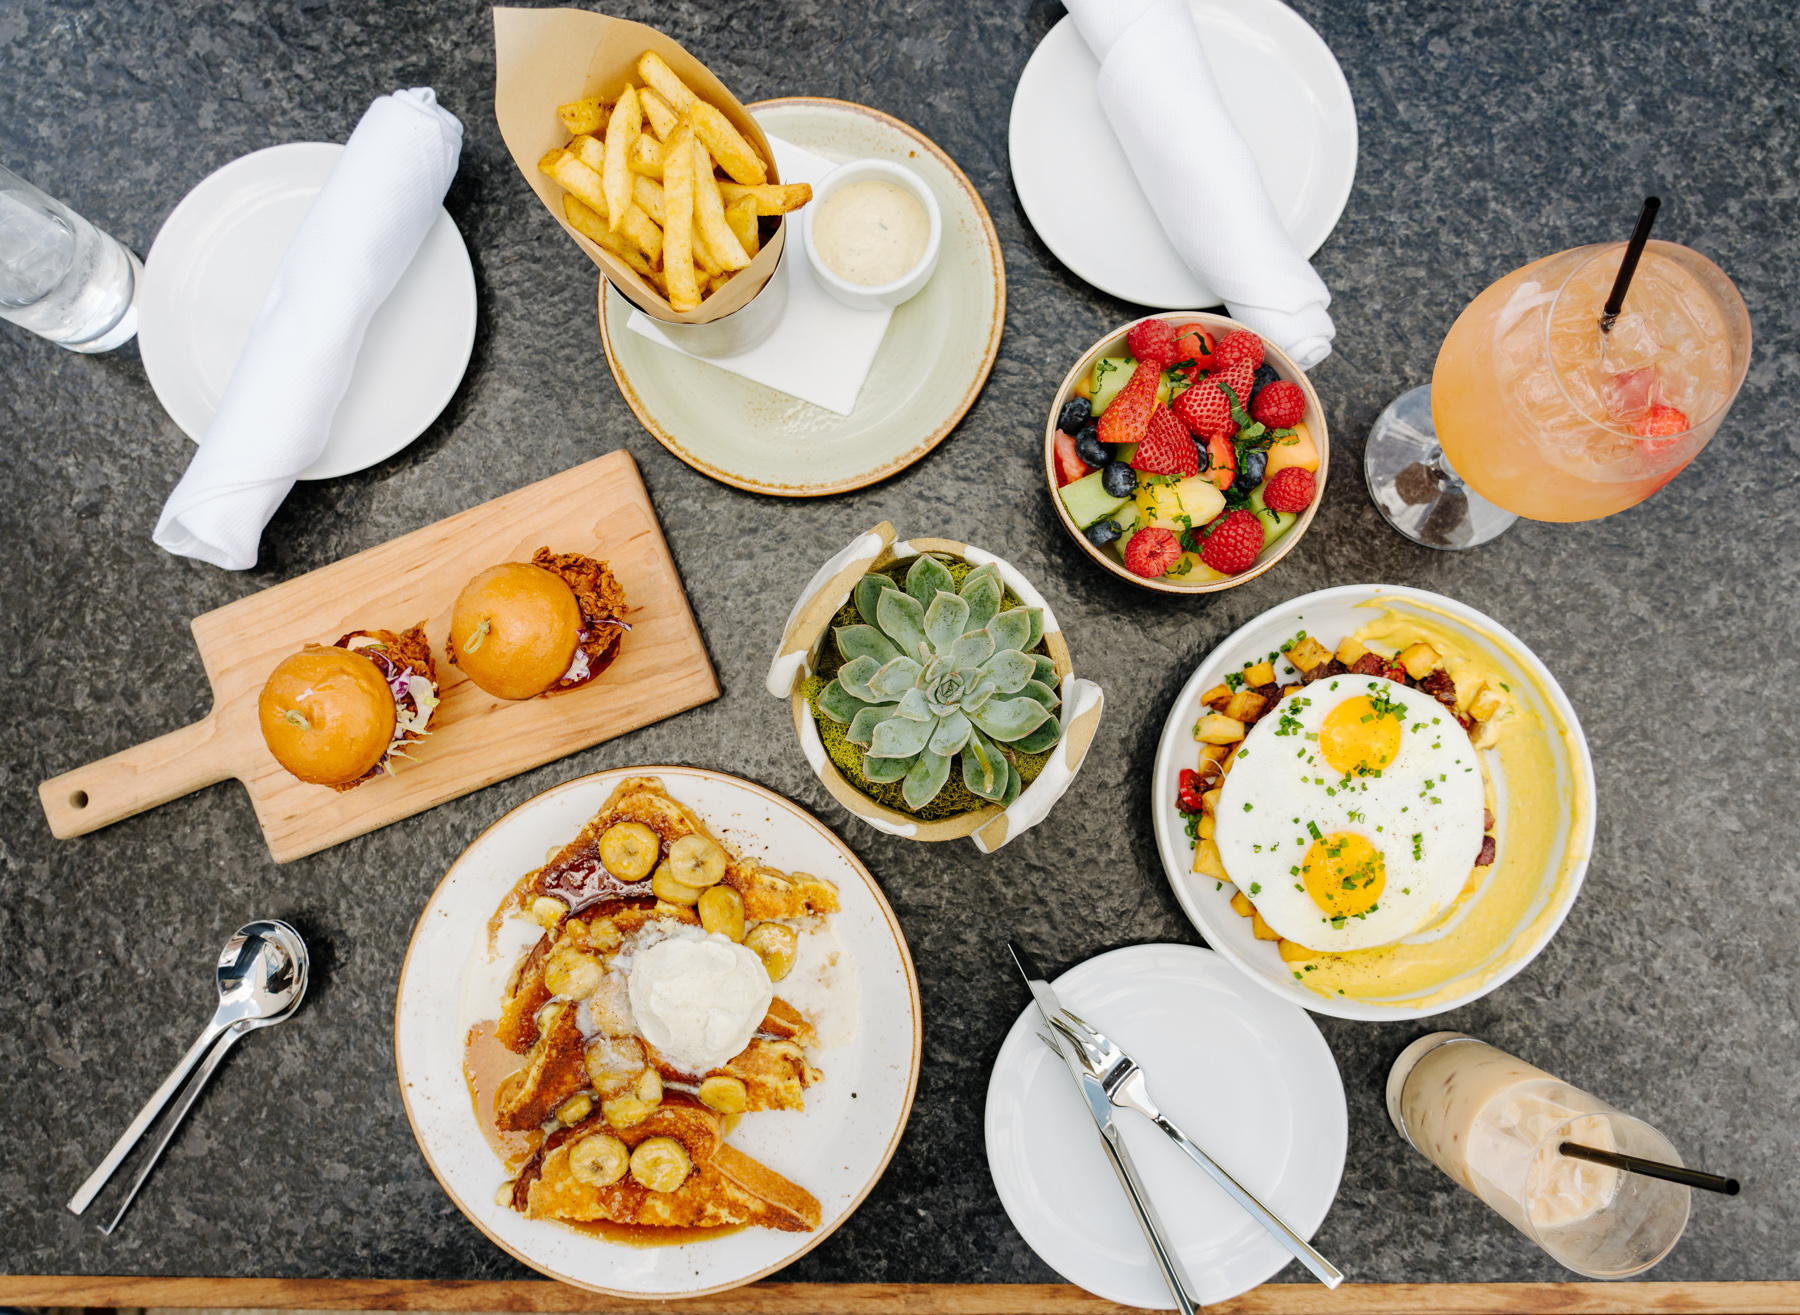 Beautiful Brunch Spread, Pool with a View, Filifera, Hollywood, CA - Brunchographers